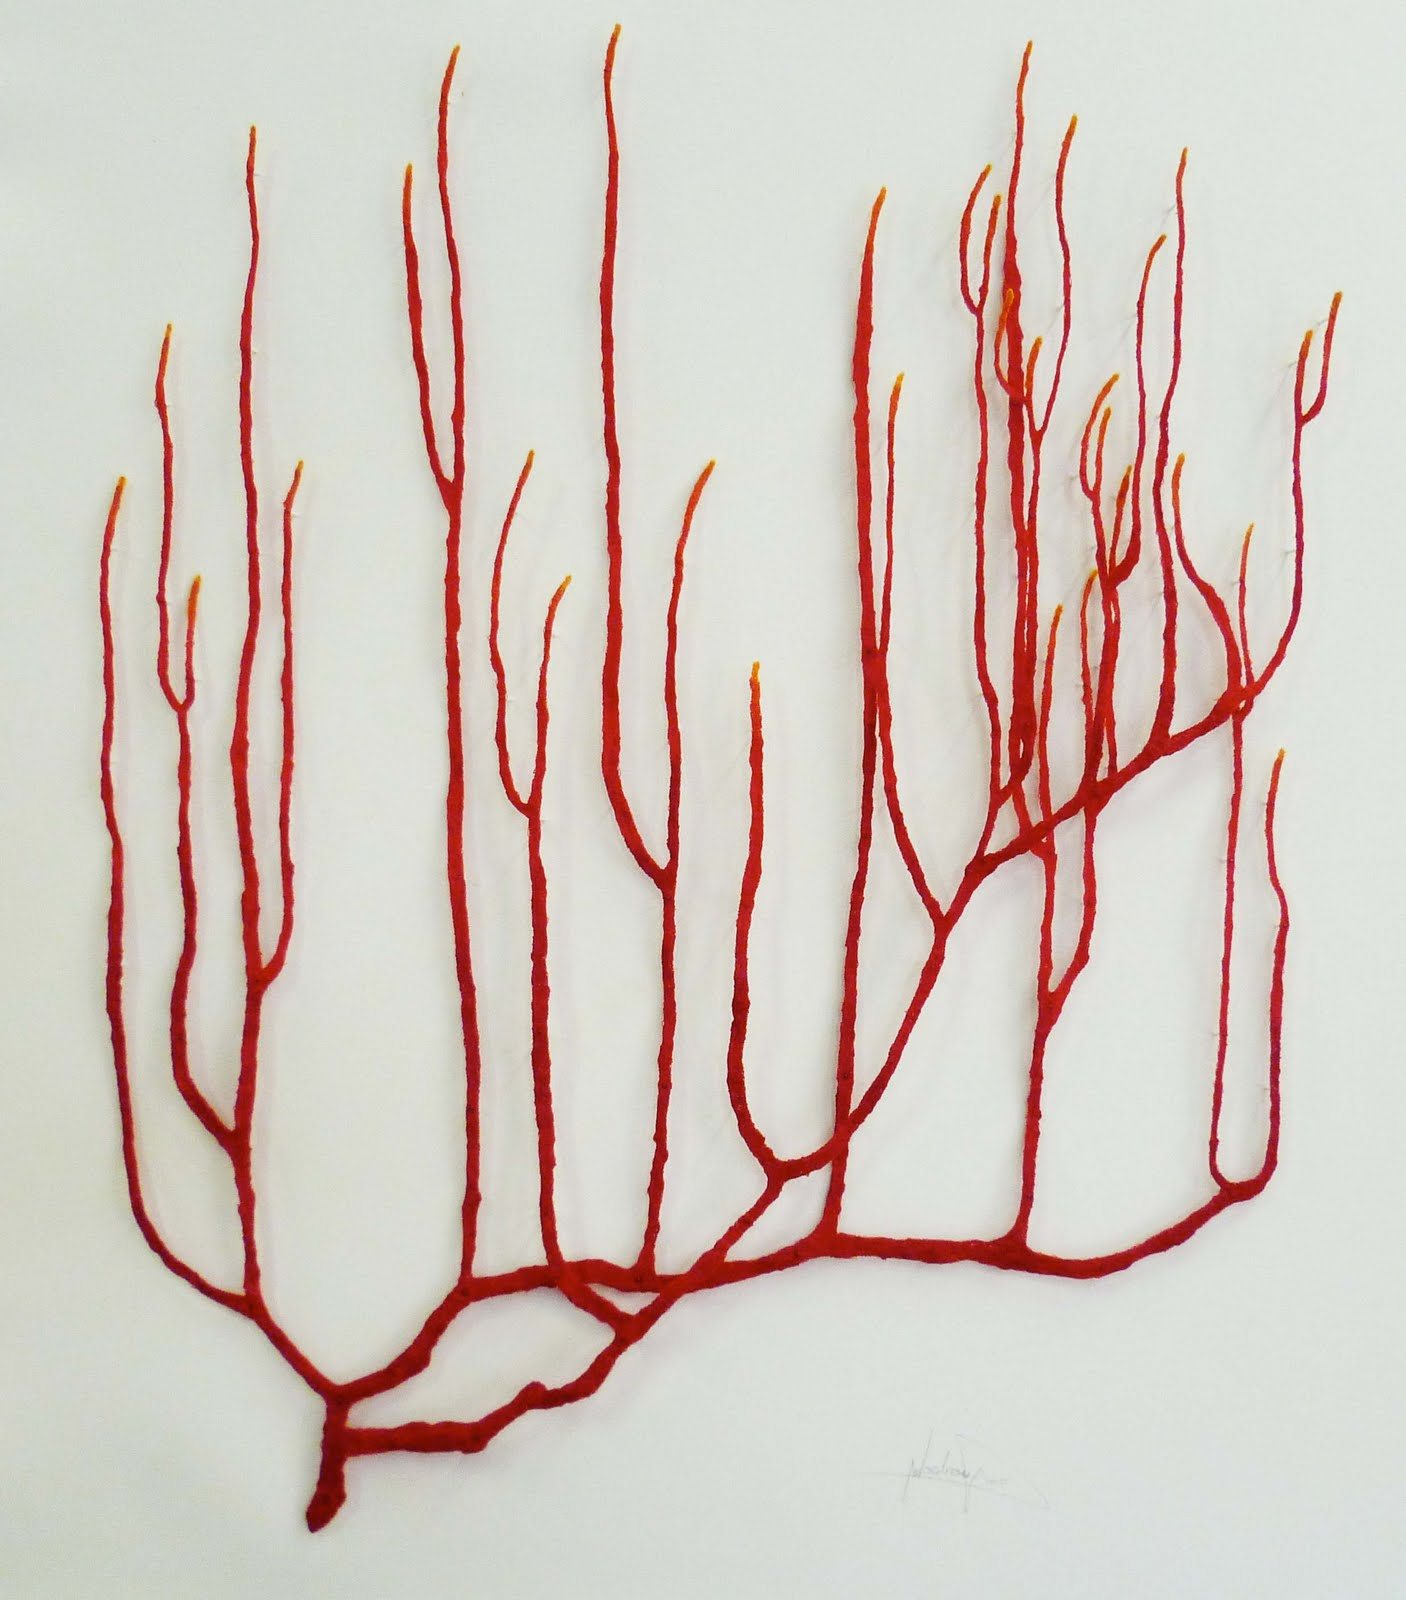 The artwork of meredith woolnough red coral series